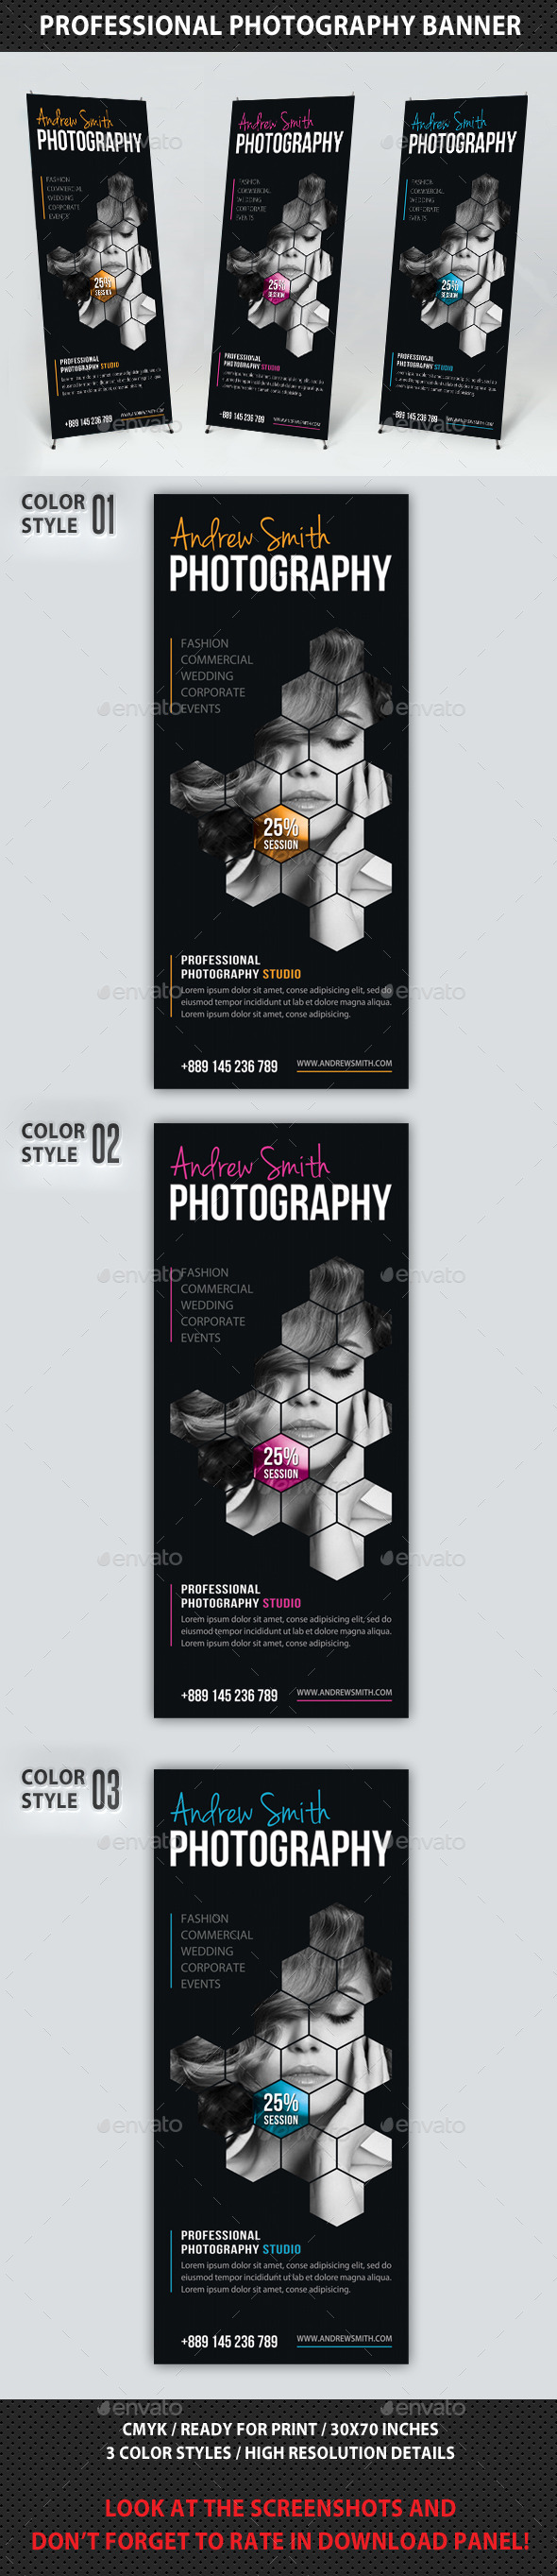 GraphicRiver Photography Studio Multipurpose Banner 12 8907983